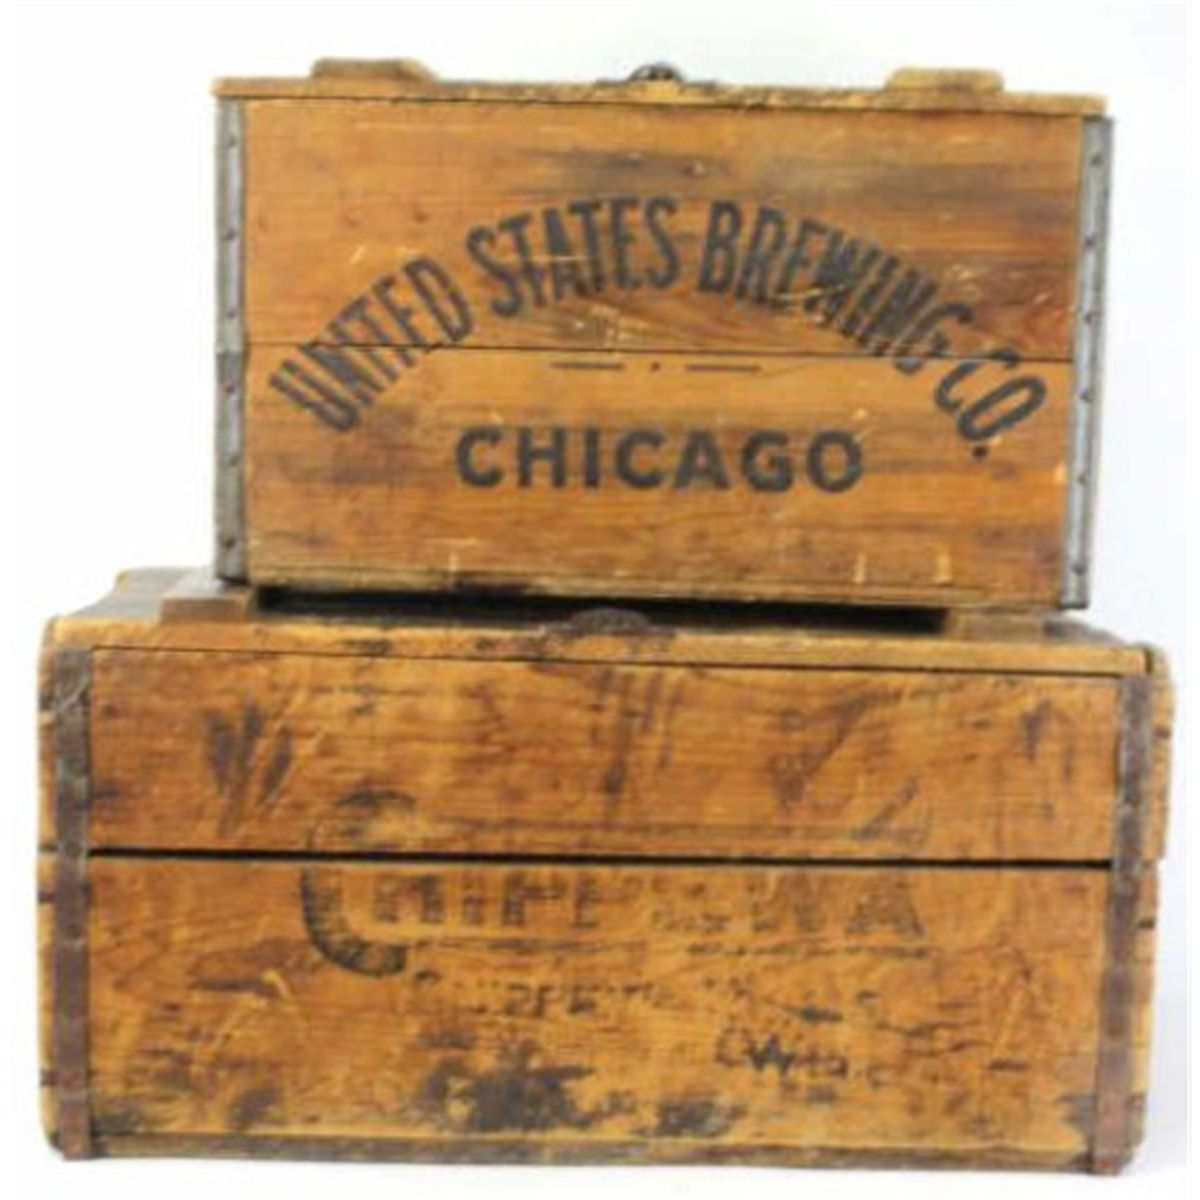 2 Wooden Advertiser Beer Crates 1 Crate Marked United States Brewing Co With Great Old Character In